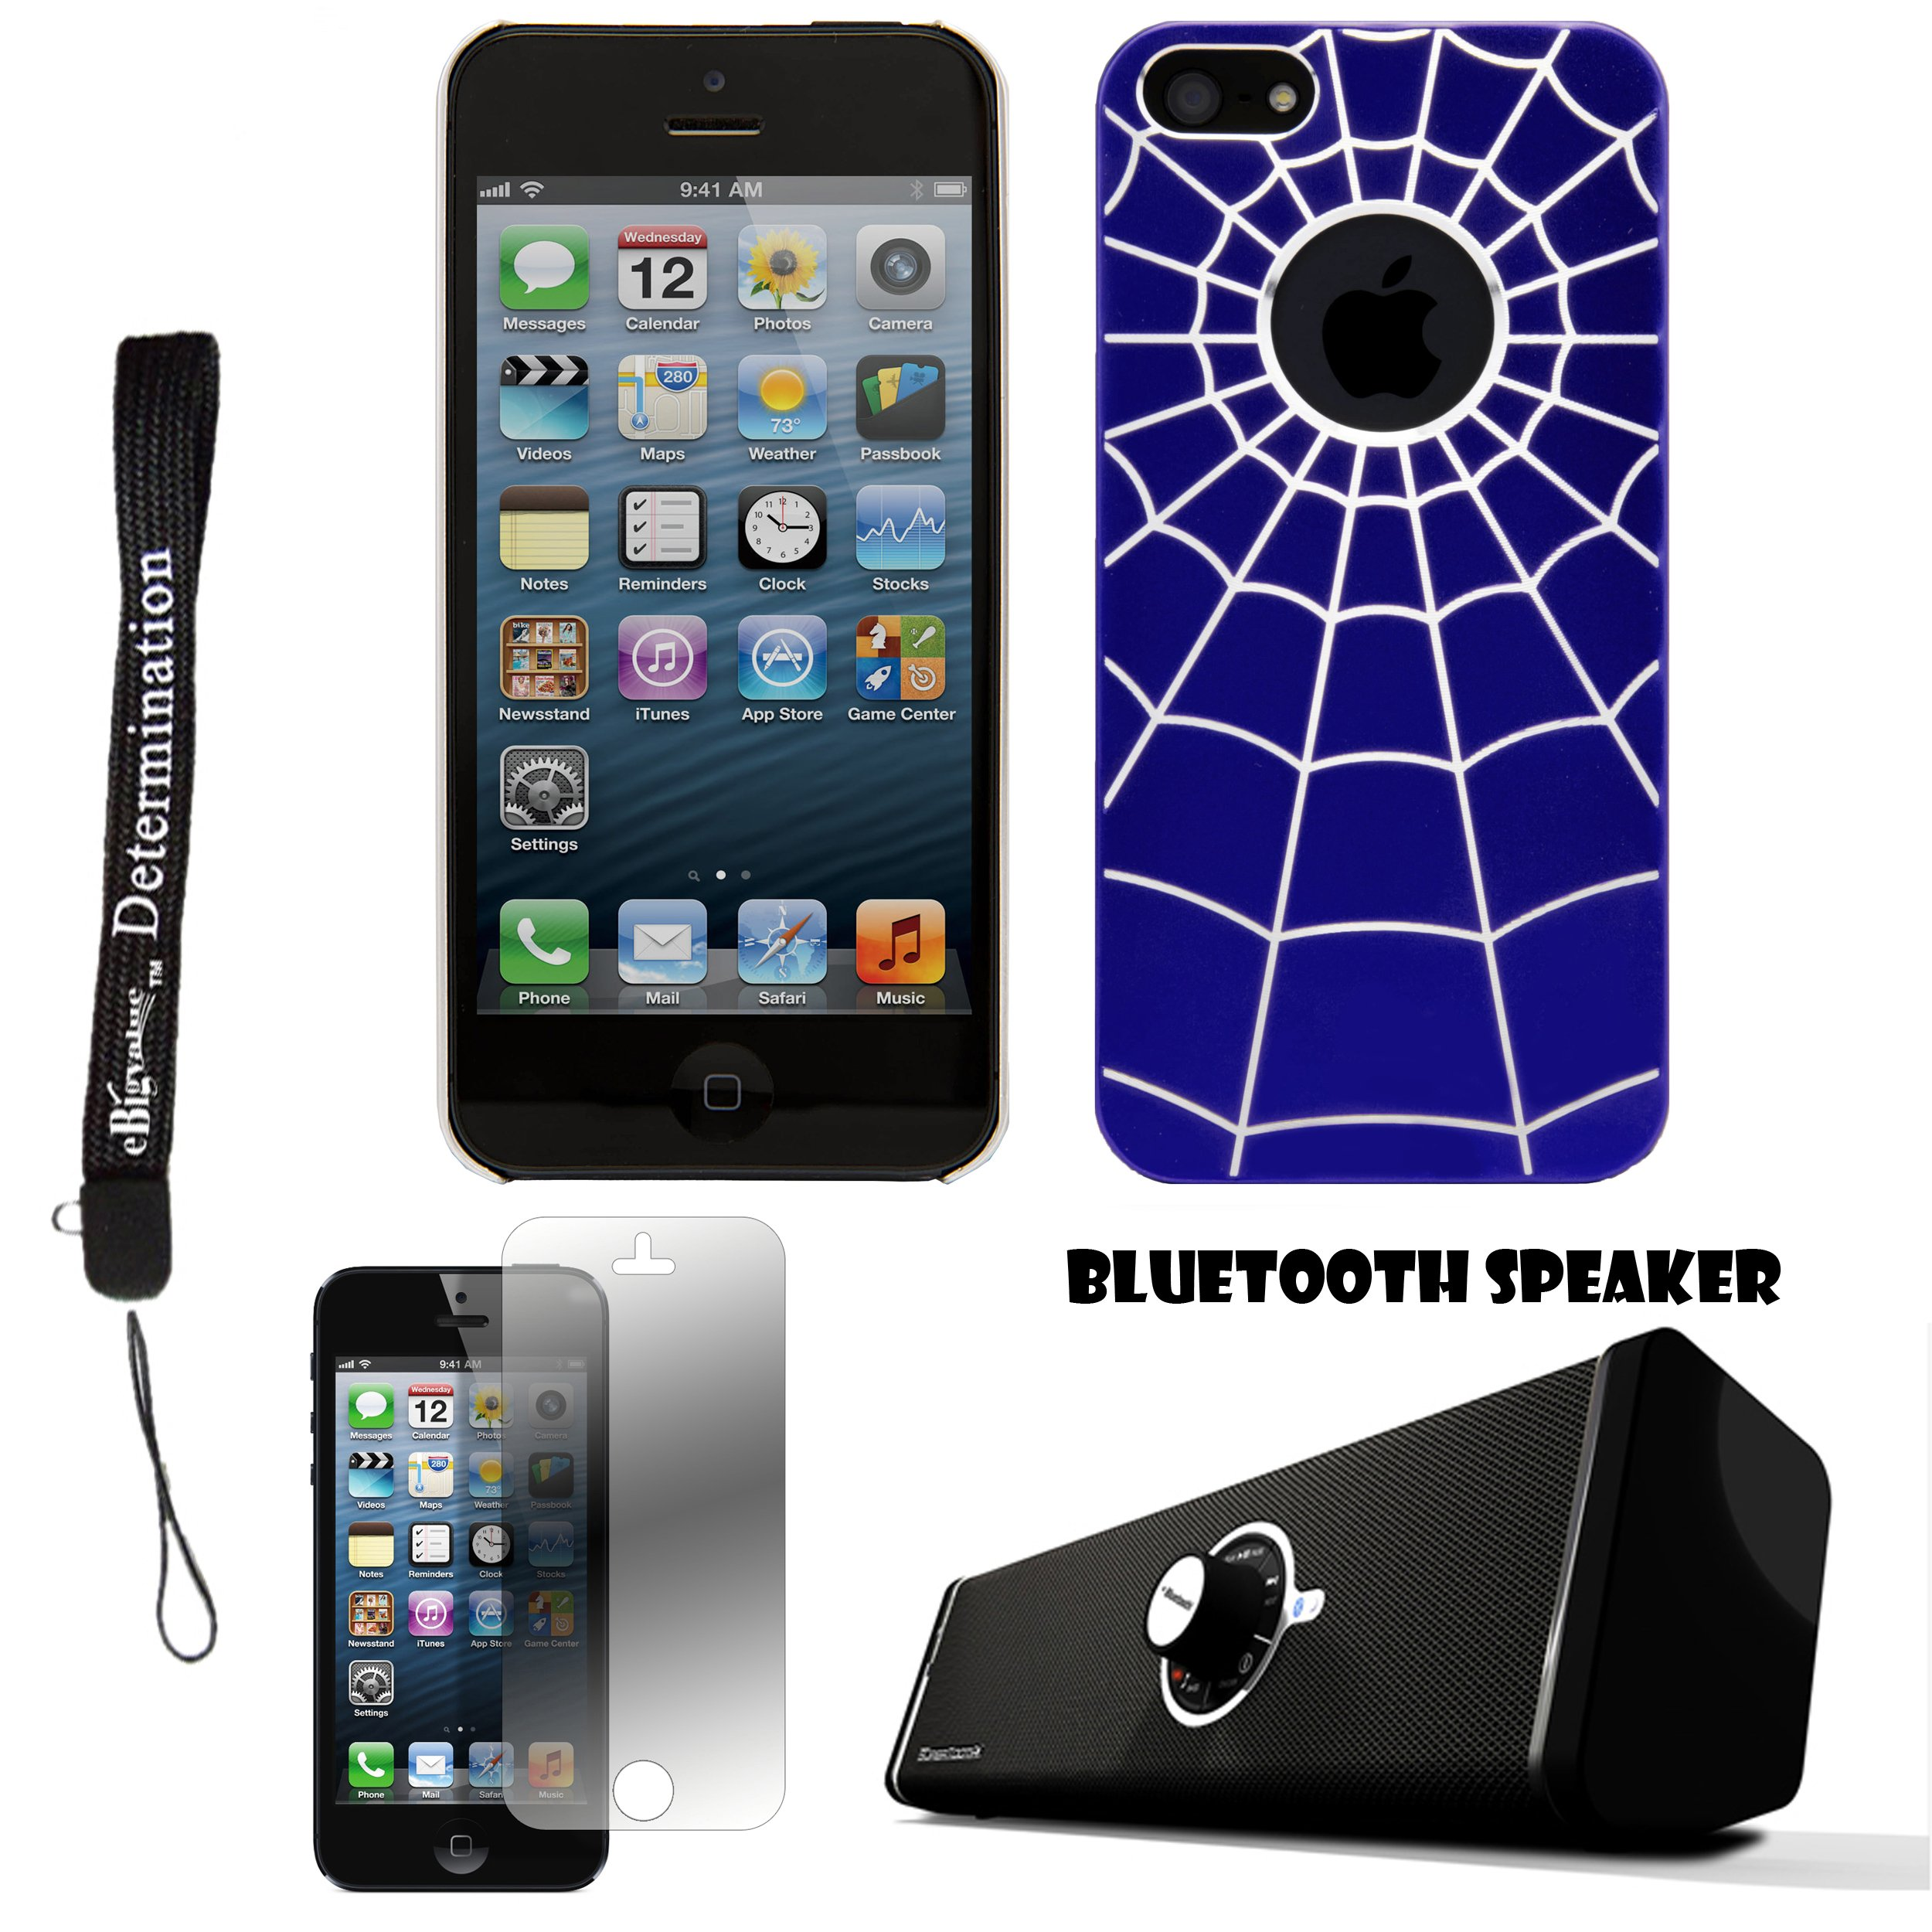 Blue Spider Web Design One-Piece Back Protective Cover For Apple iPhone 5 iOS (6) Smart Phone + Supertooth Disco Bluetooth Speaker with AUX Cable + Apple iPhone 5 Screen Protector + an eBigValue Determination Hand Strap by eBigValue